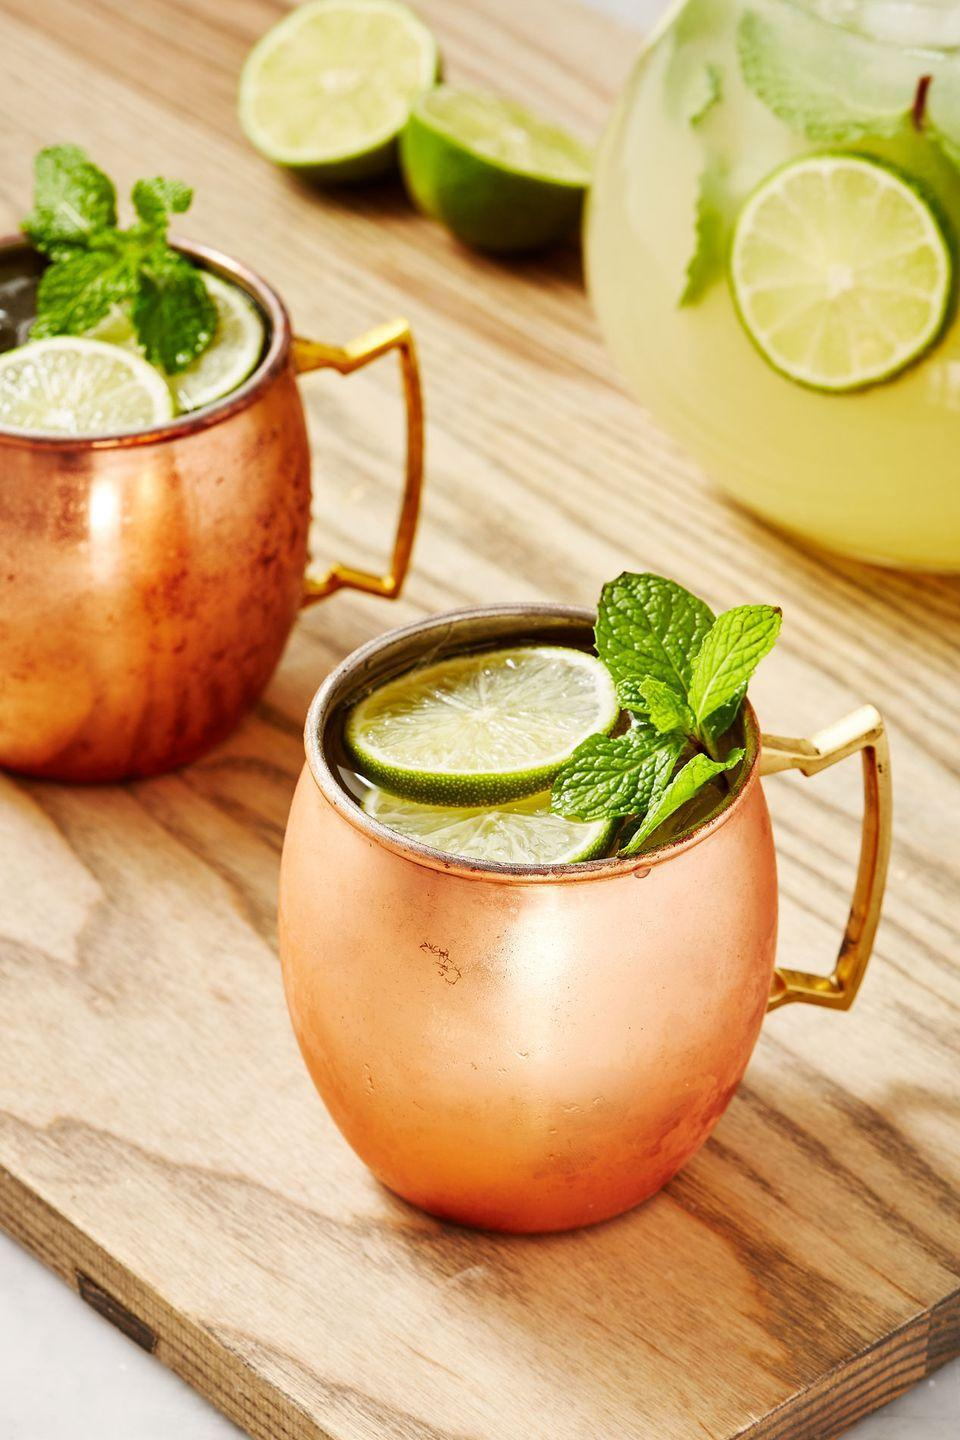 """<p>Basically an enormous mule.</p><p>Get the recipe from <a href=""""https://www.delish.com/cooking/recipe-ideas/a22698590/moscow-mule-punch-recipe/"""" rel=""""nofollow noopener"""" target=""""_blank"""" data-ylk=""""slk:Delish"""" class=""""link rapid-noclick-resp"""">Delish</a>.</p>"""